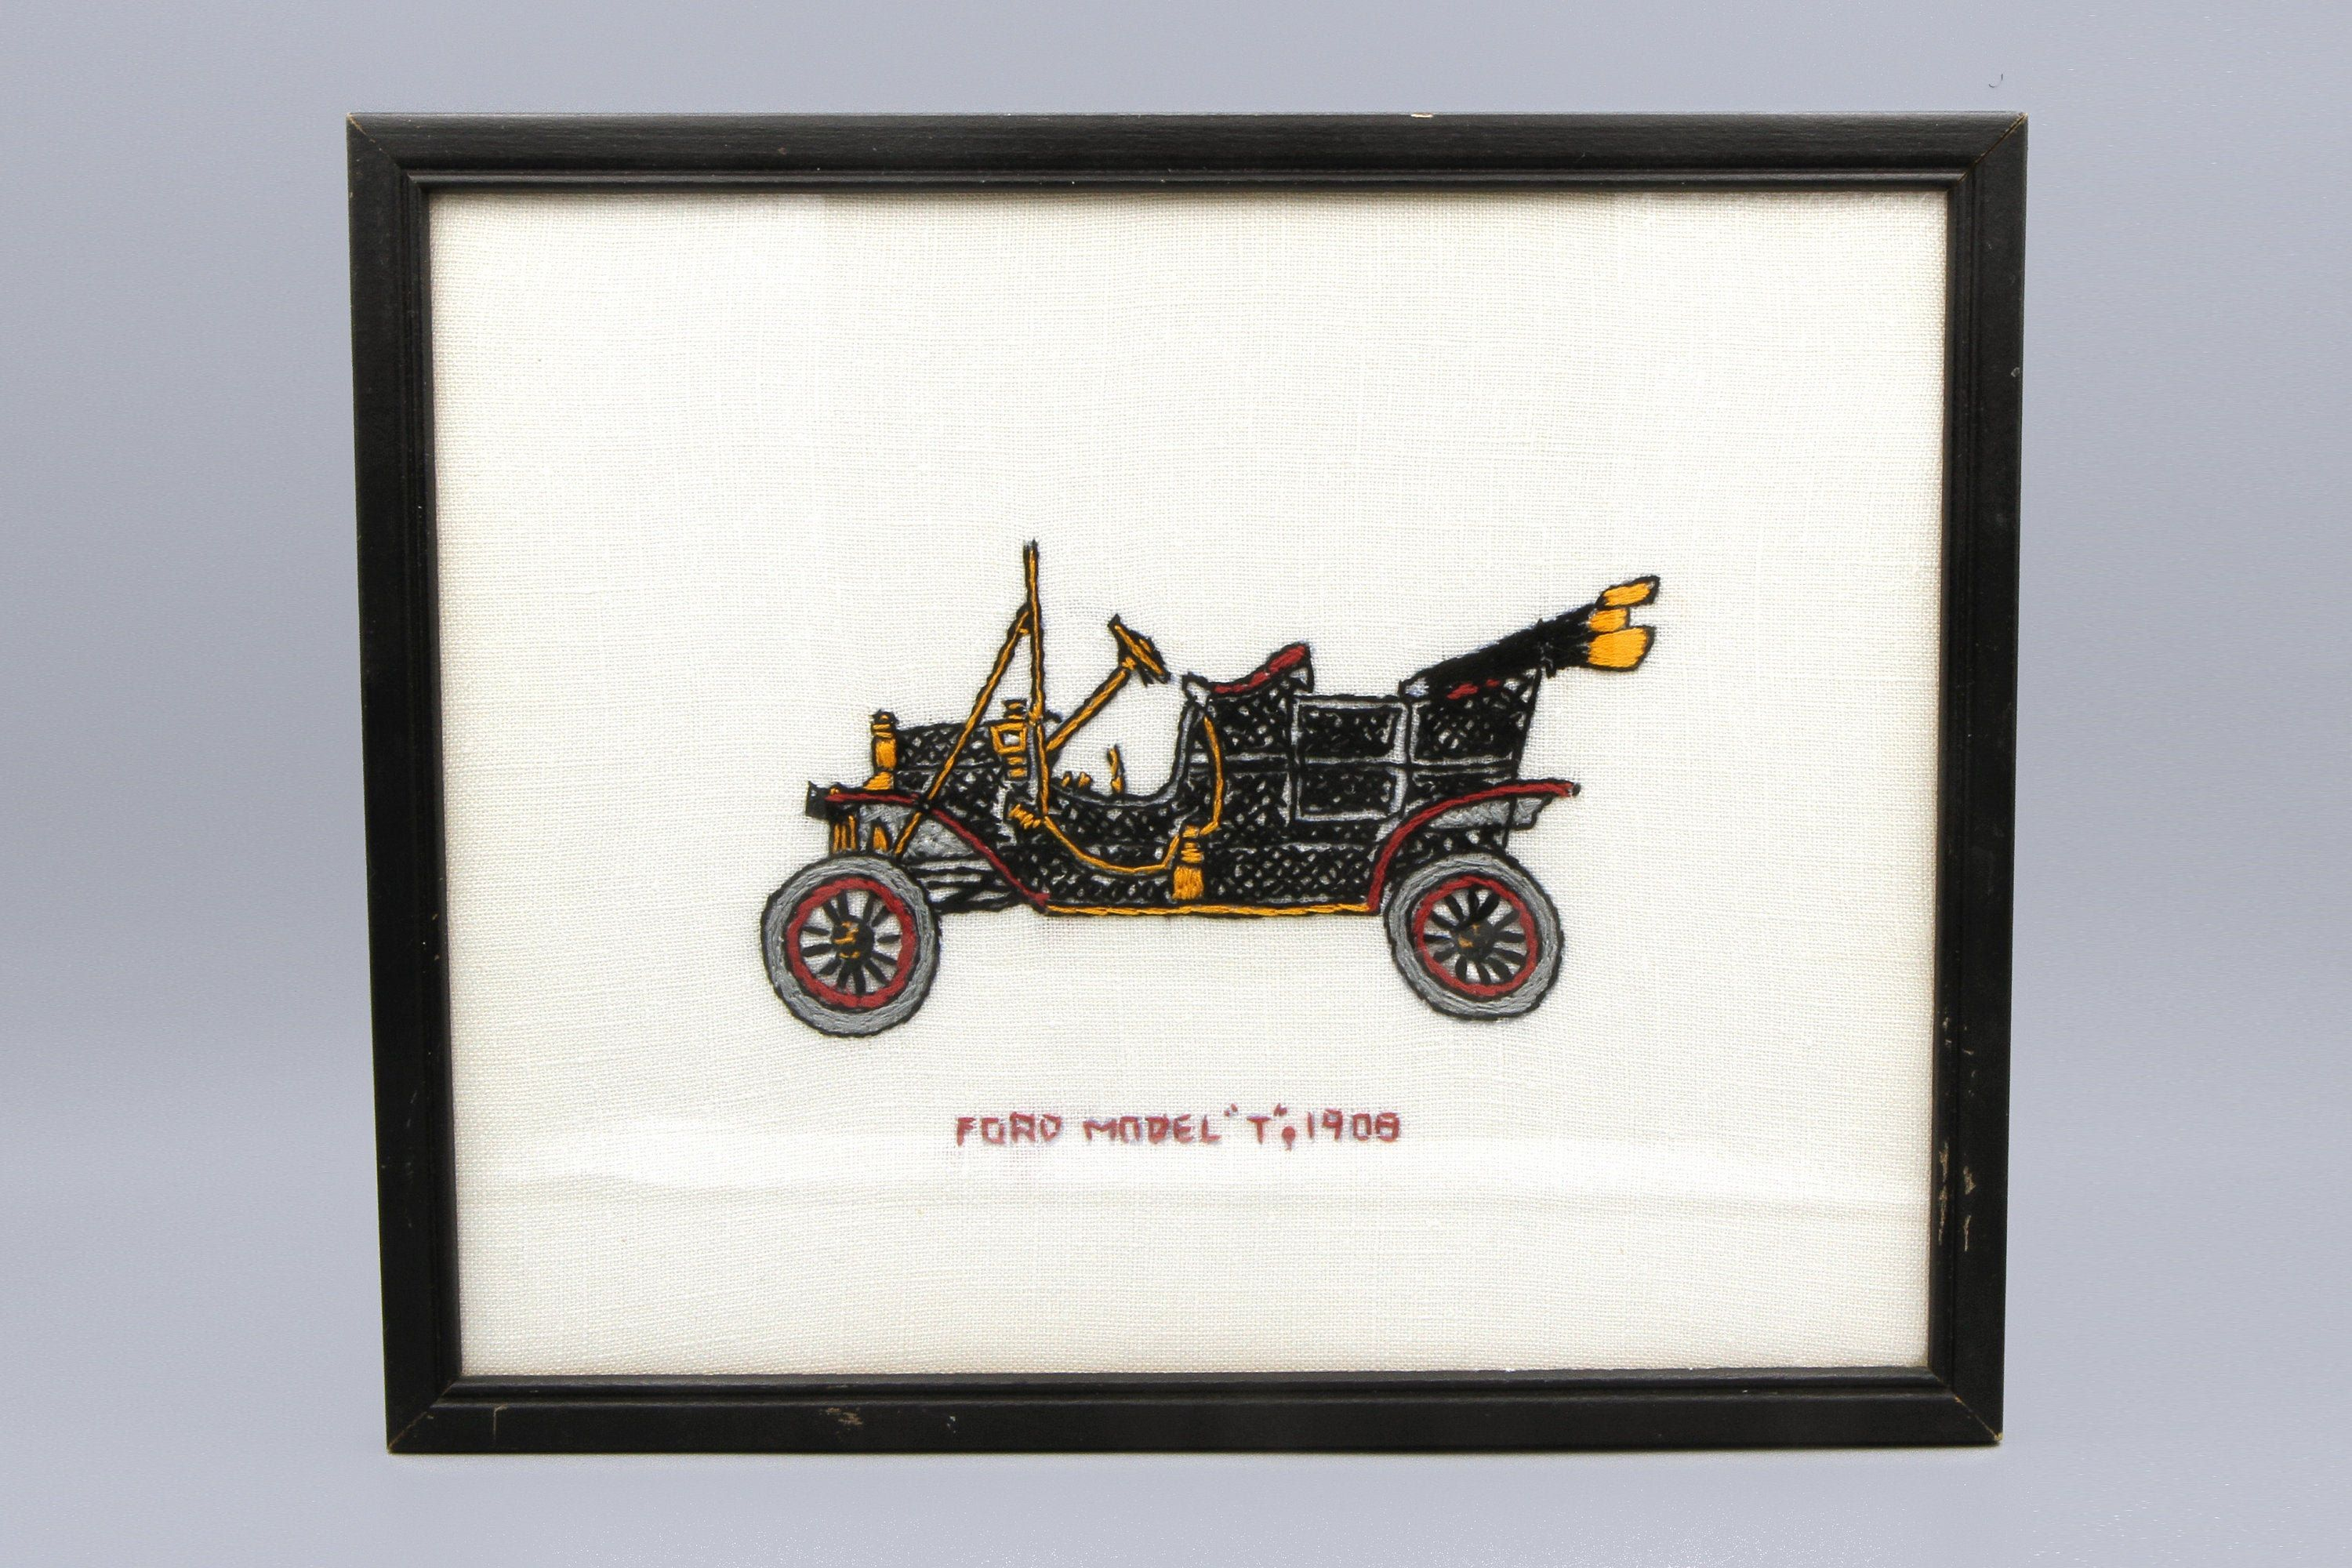 Antique Car Wall Hanging Hand Embroidered Old Car Ford Model T 1908 Wall Decor Vintage 50s Car Wall Ar Car Wall Art Embroidery Wall Art Embroidered Wall Art